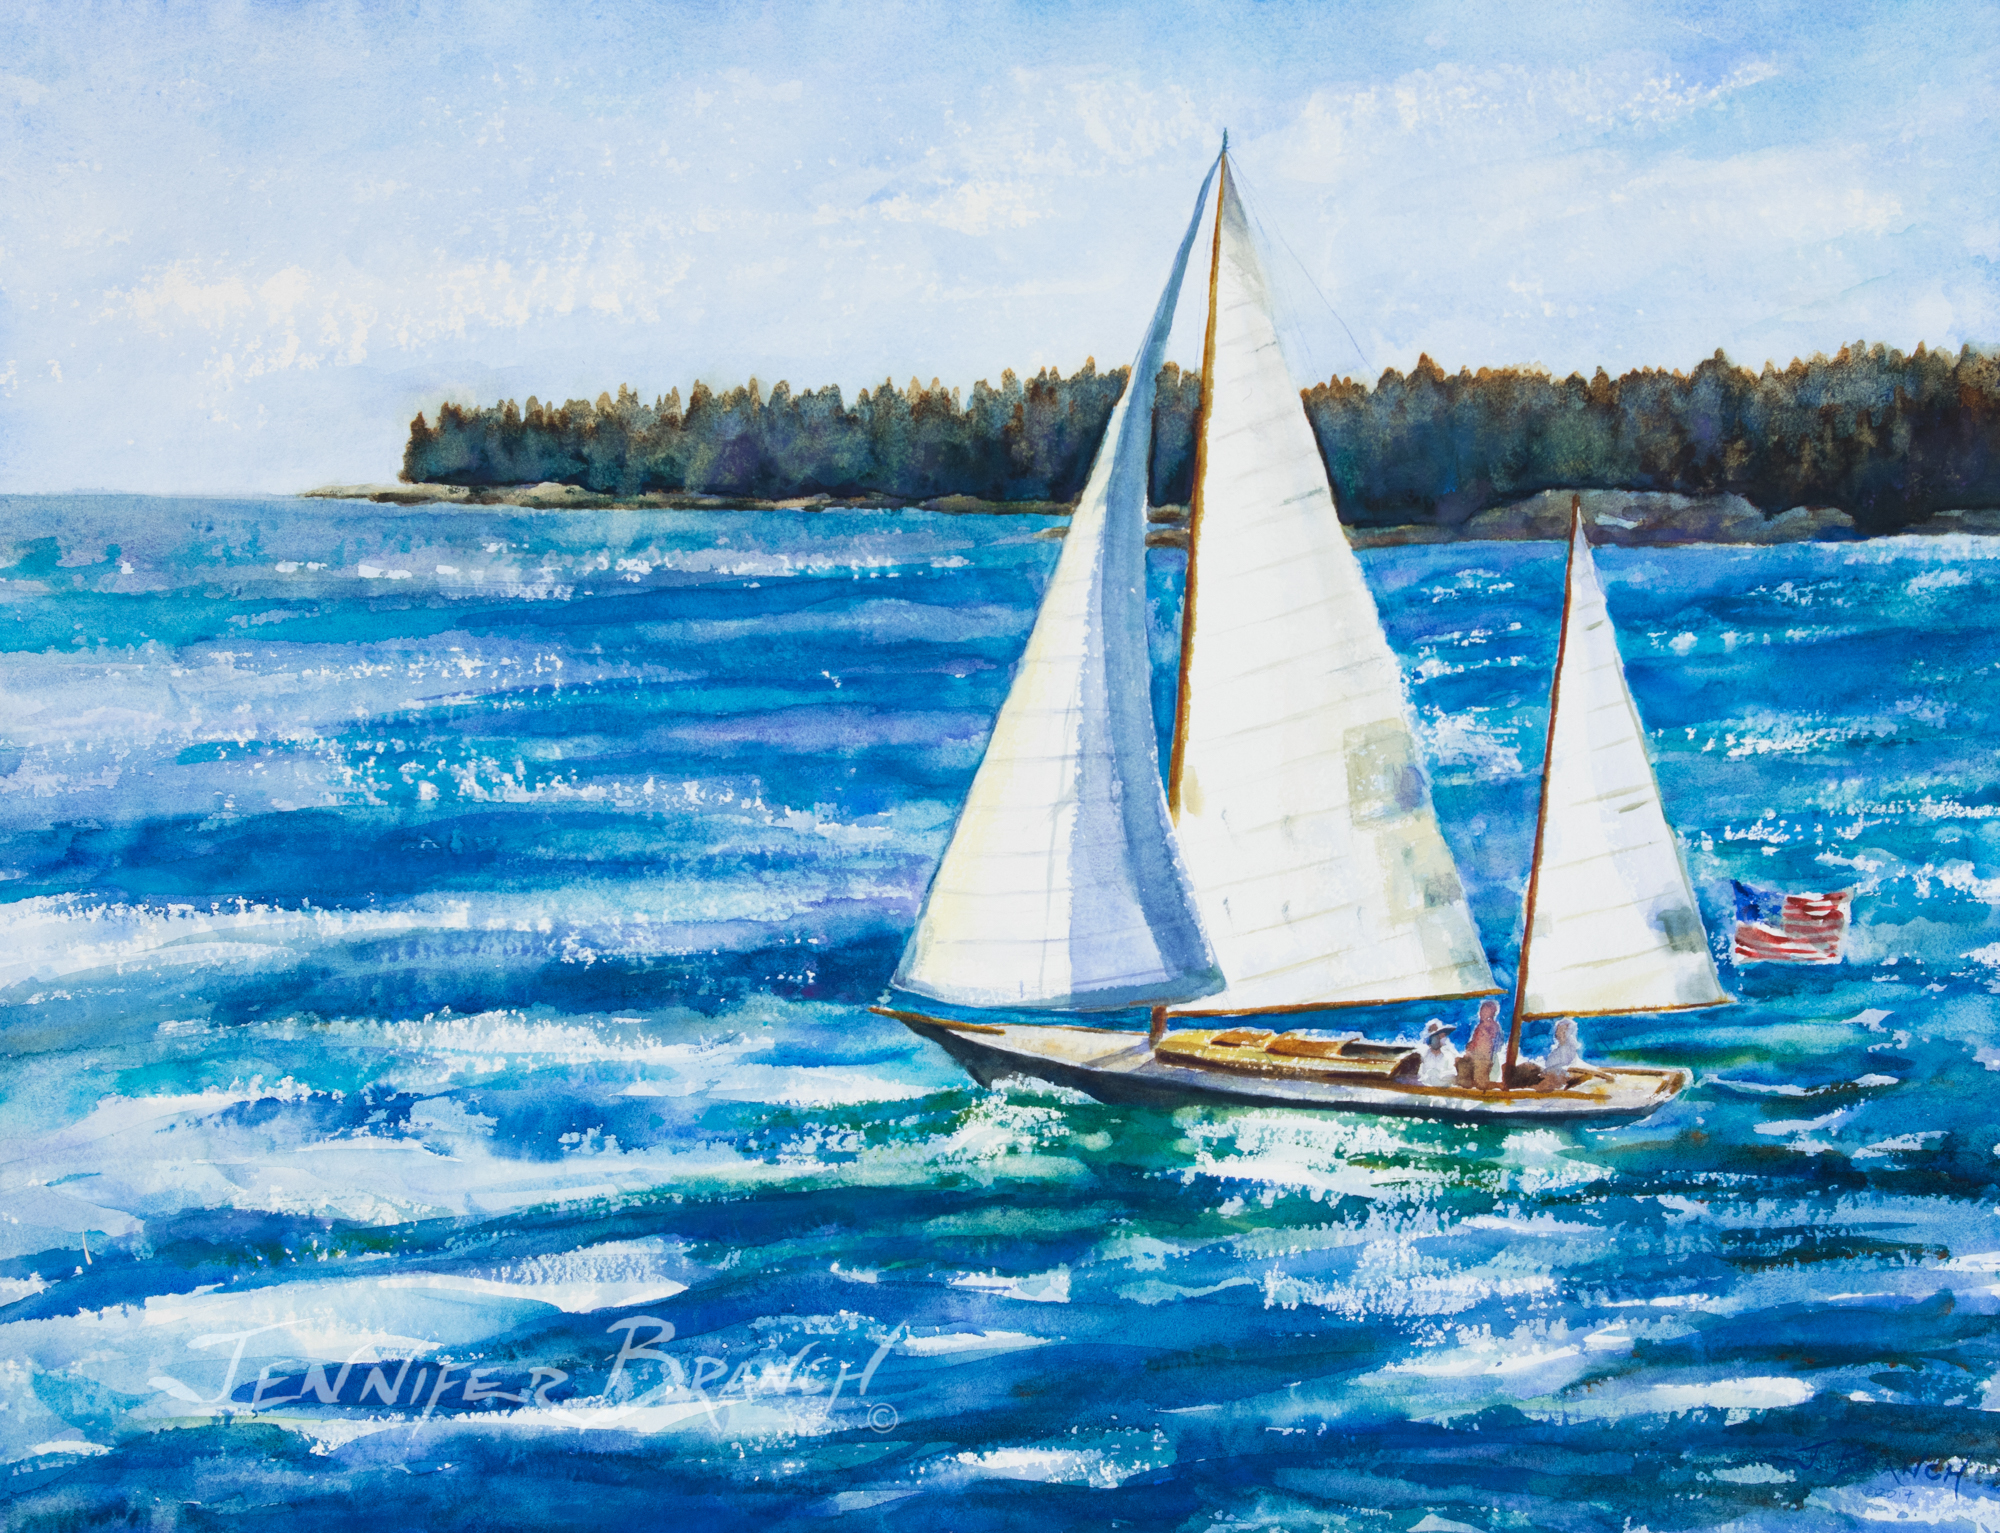 Sailboat flying an American flag watercolor painting. by Jennifer Branch.